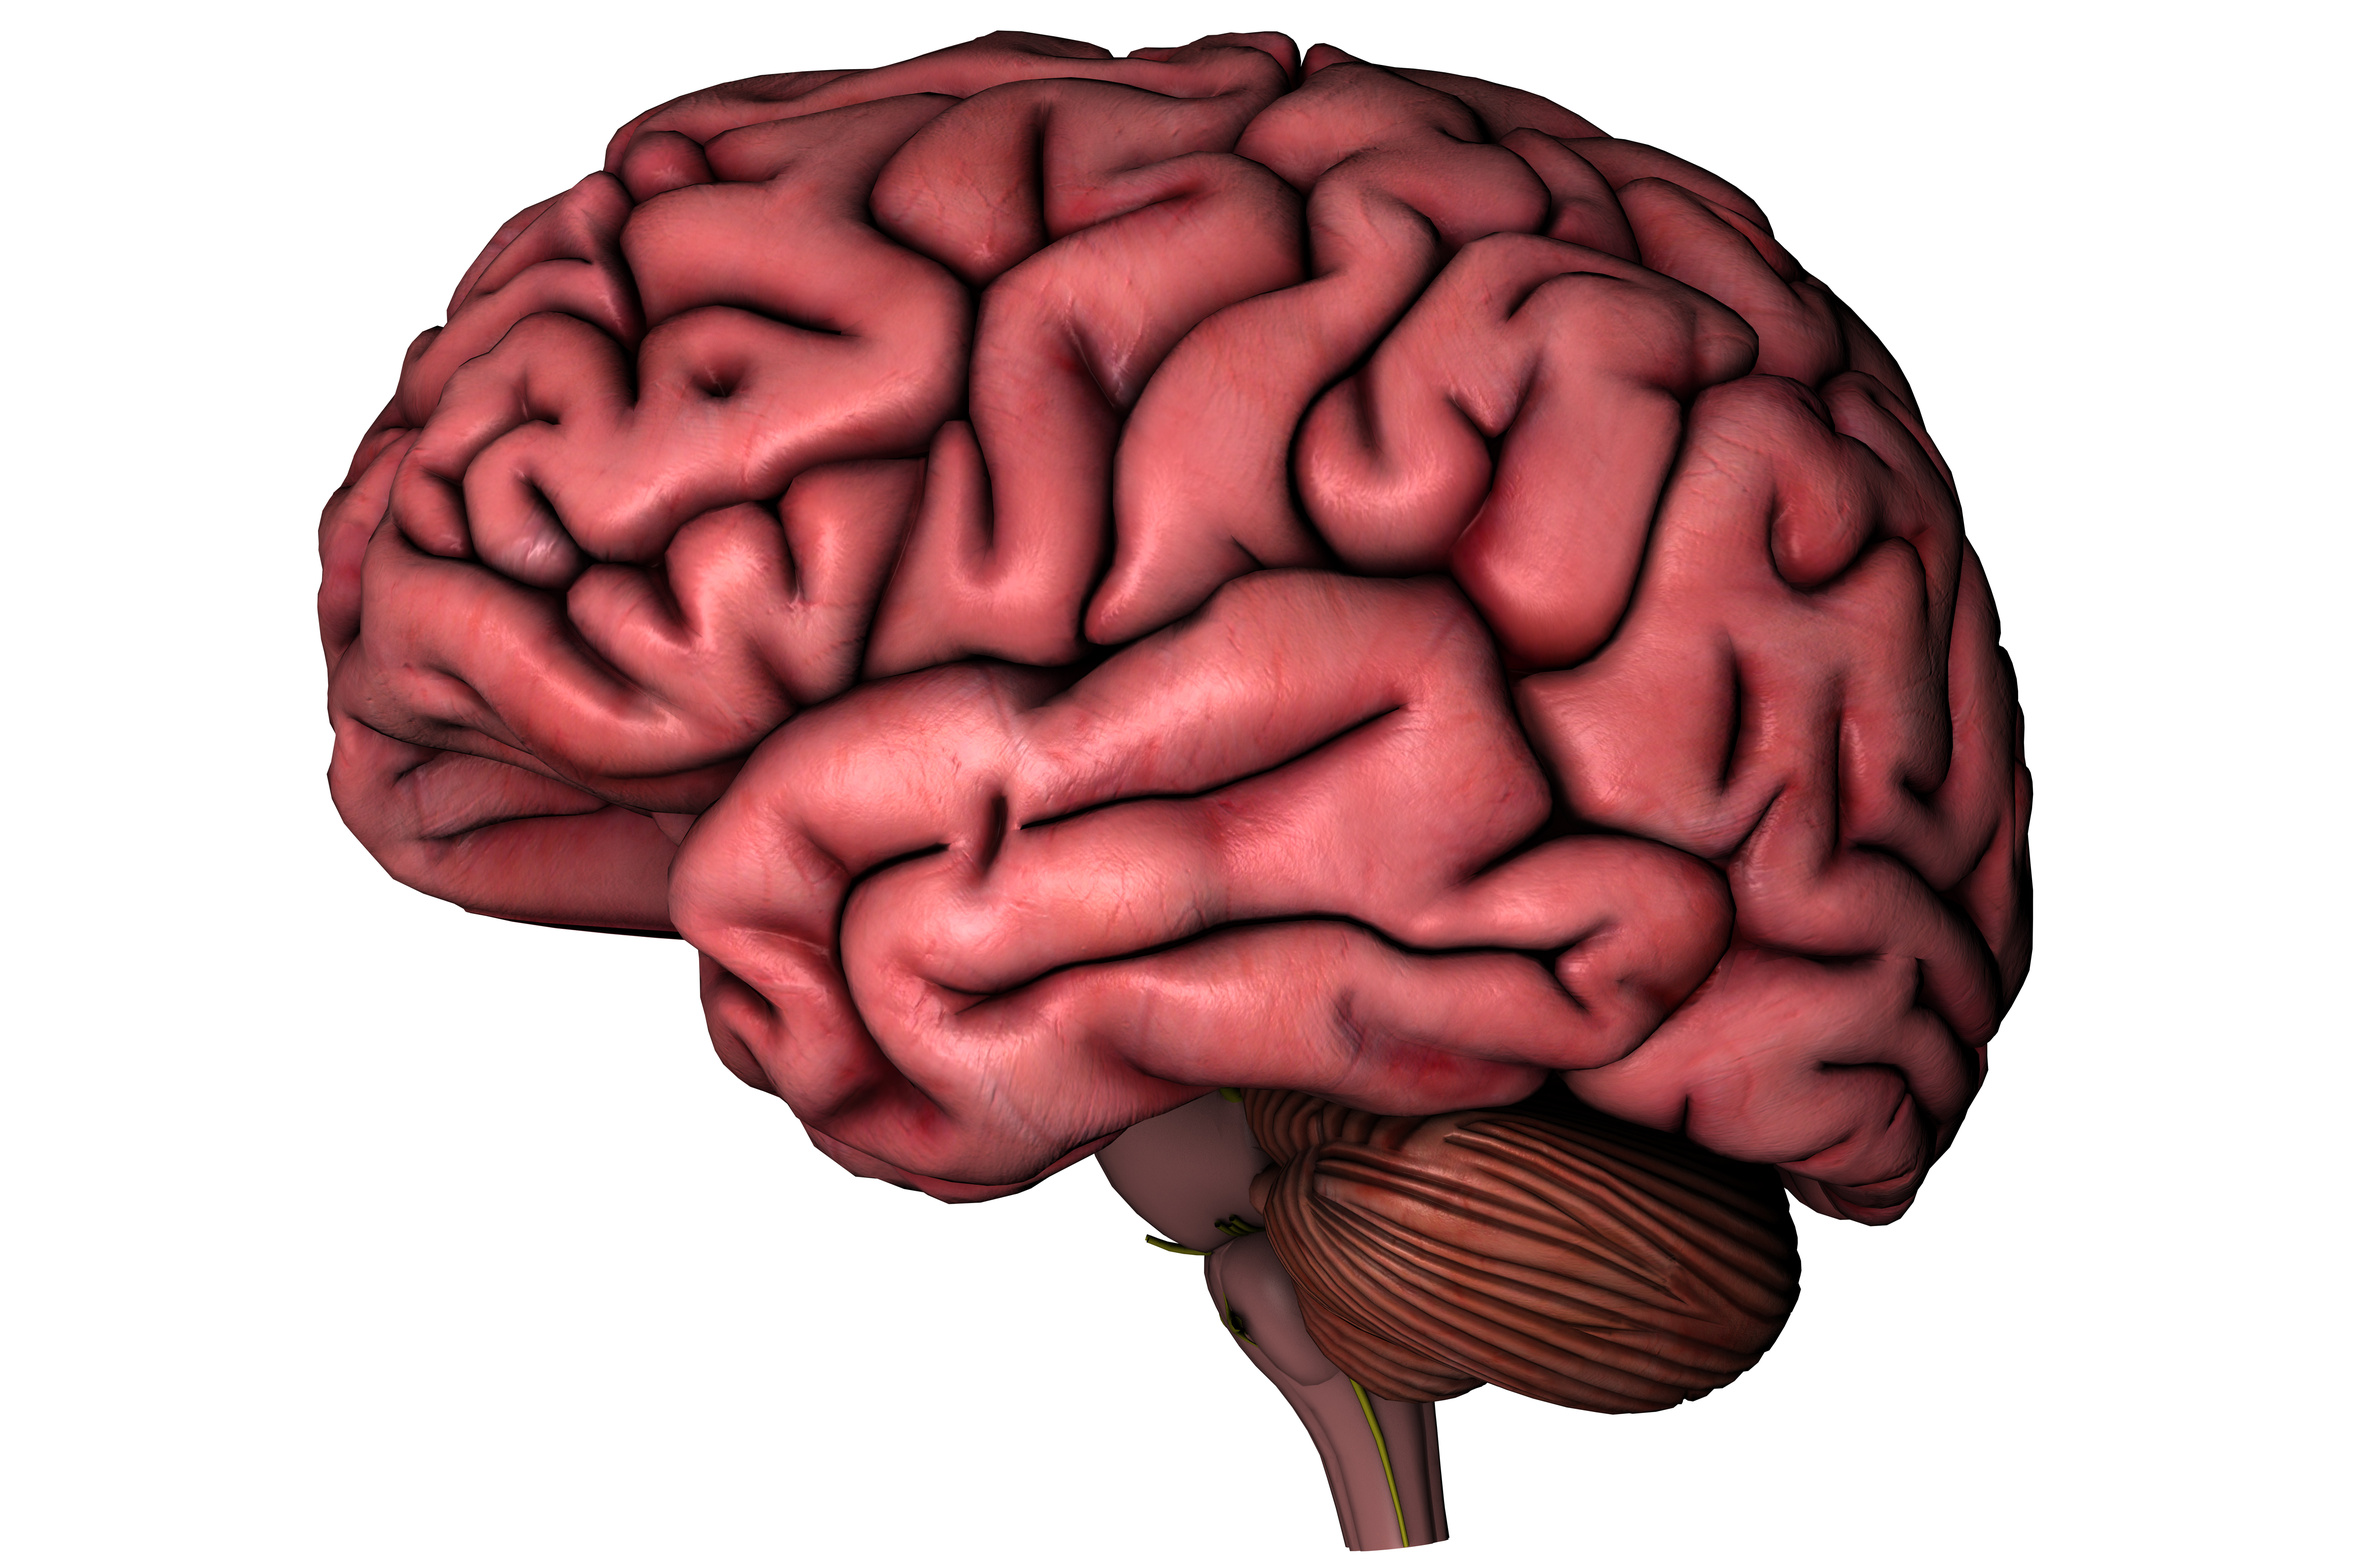 Human Brain On White Background Fort Worth Weekly